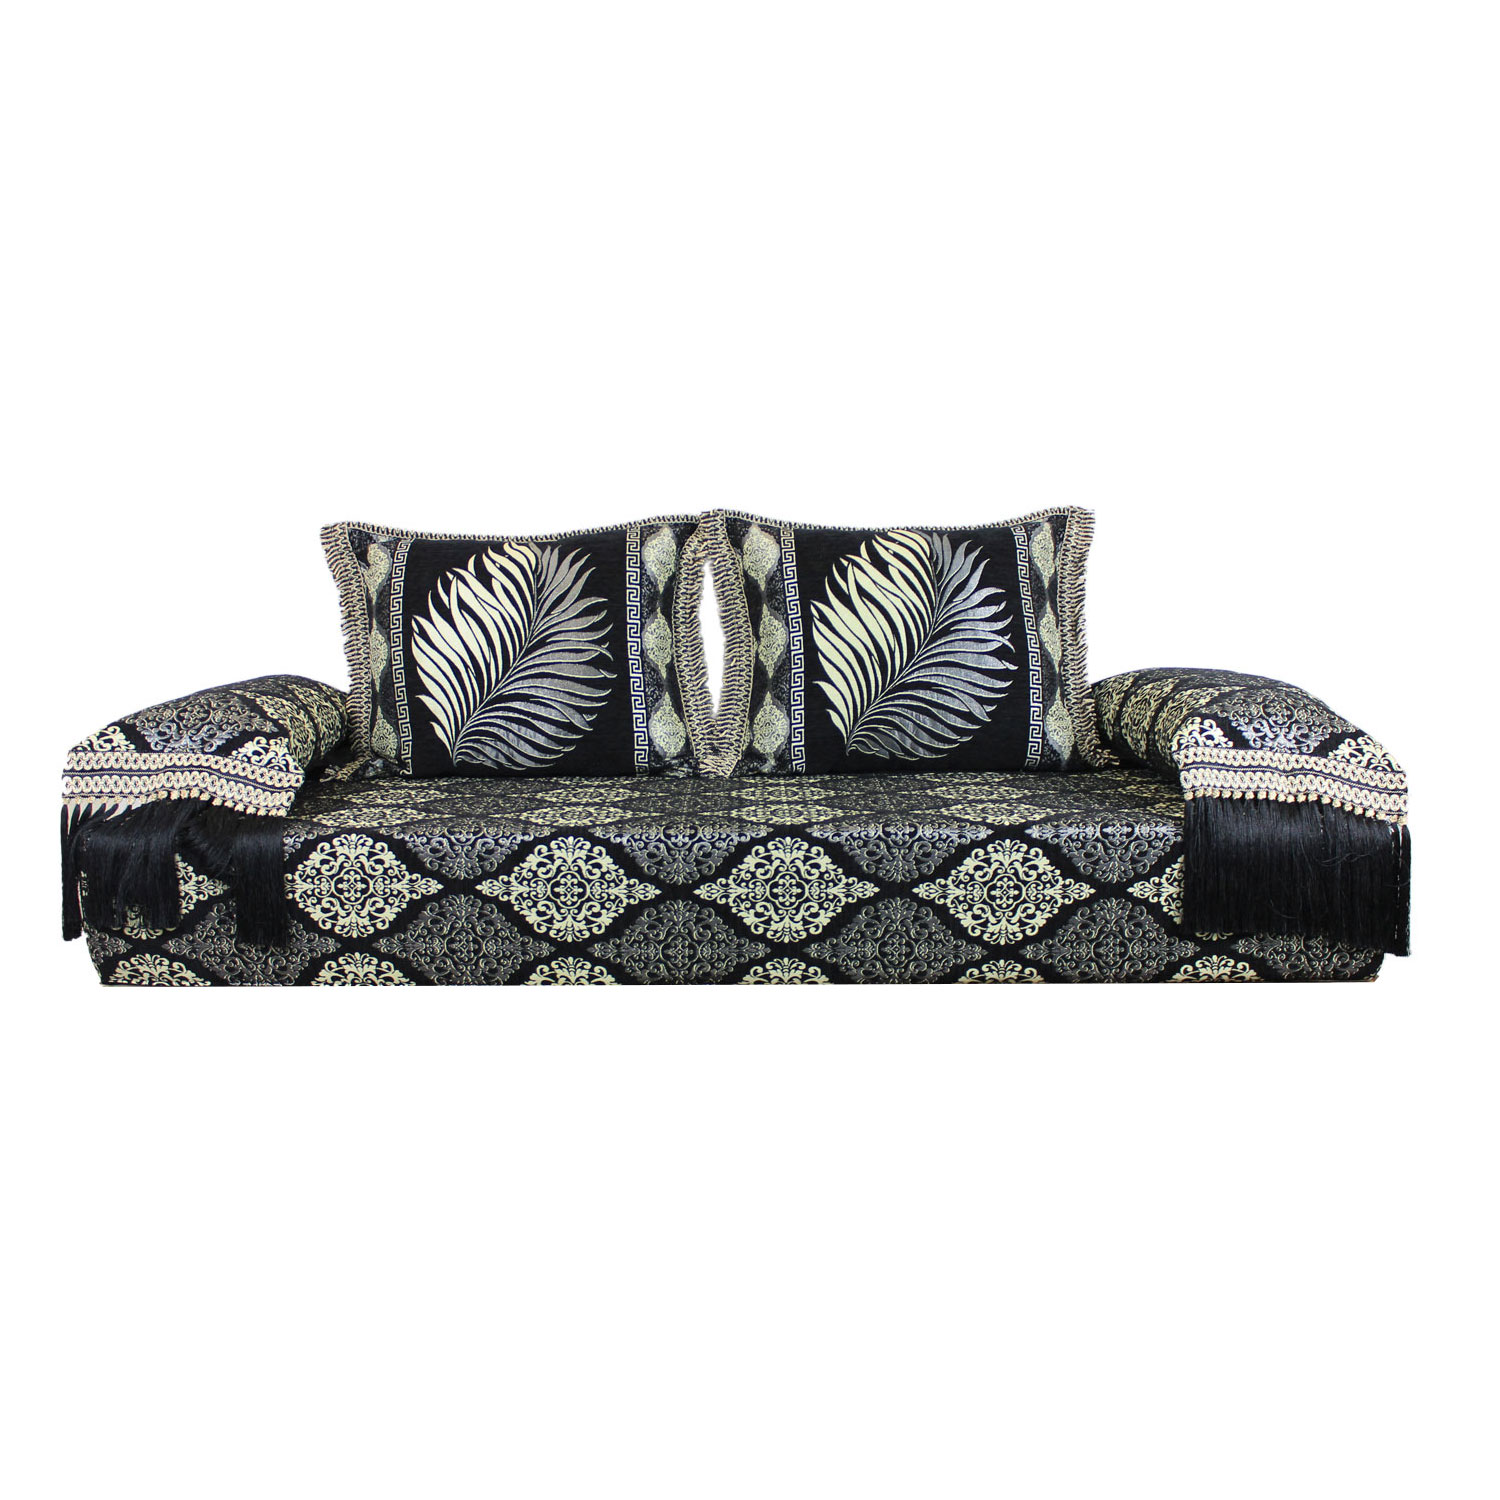 orientalisches sofa nasiha bei ihrem orient shop casa moro. Black Bedroom Furniture Sets. Home Design Ideas